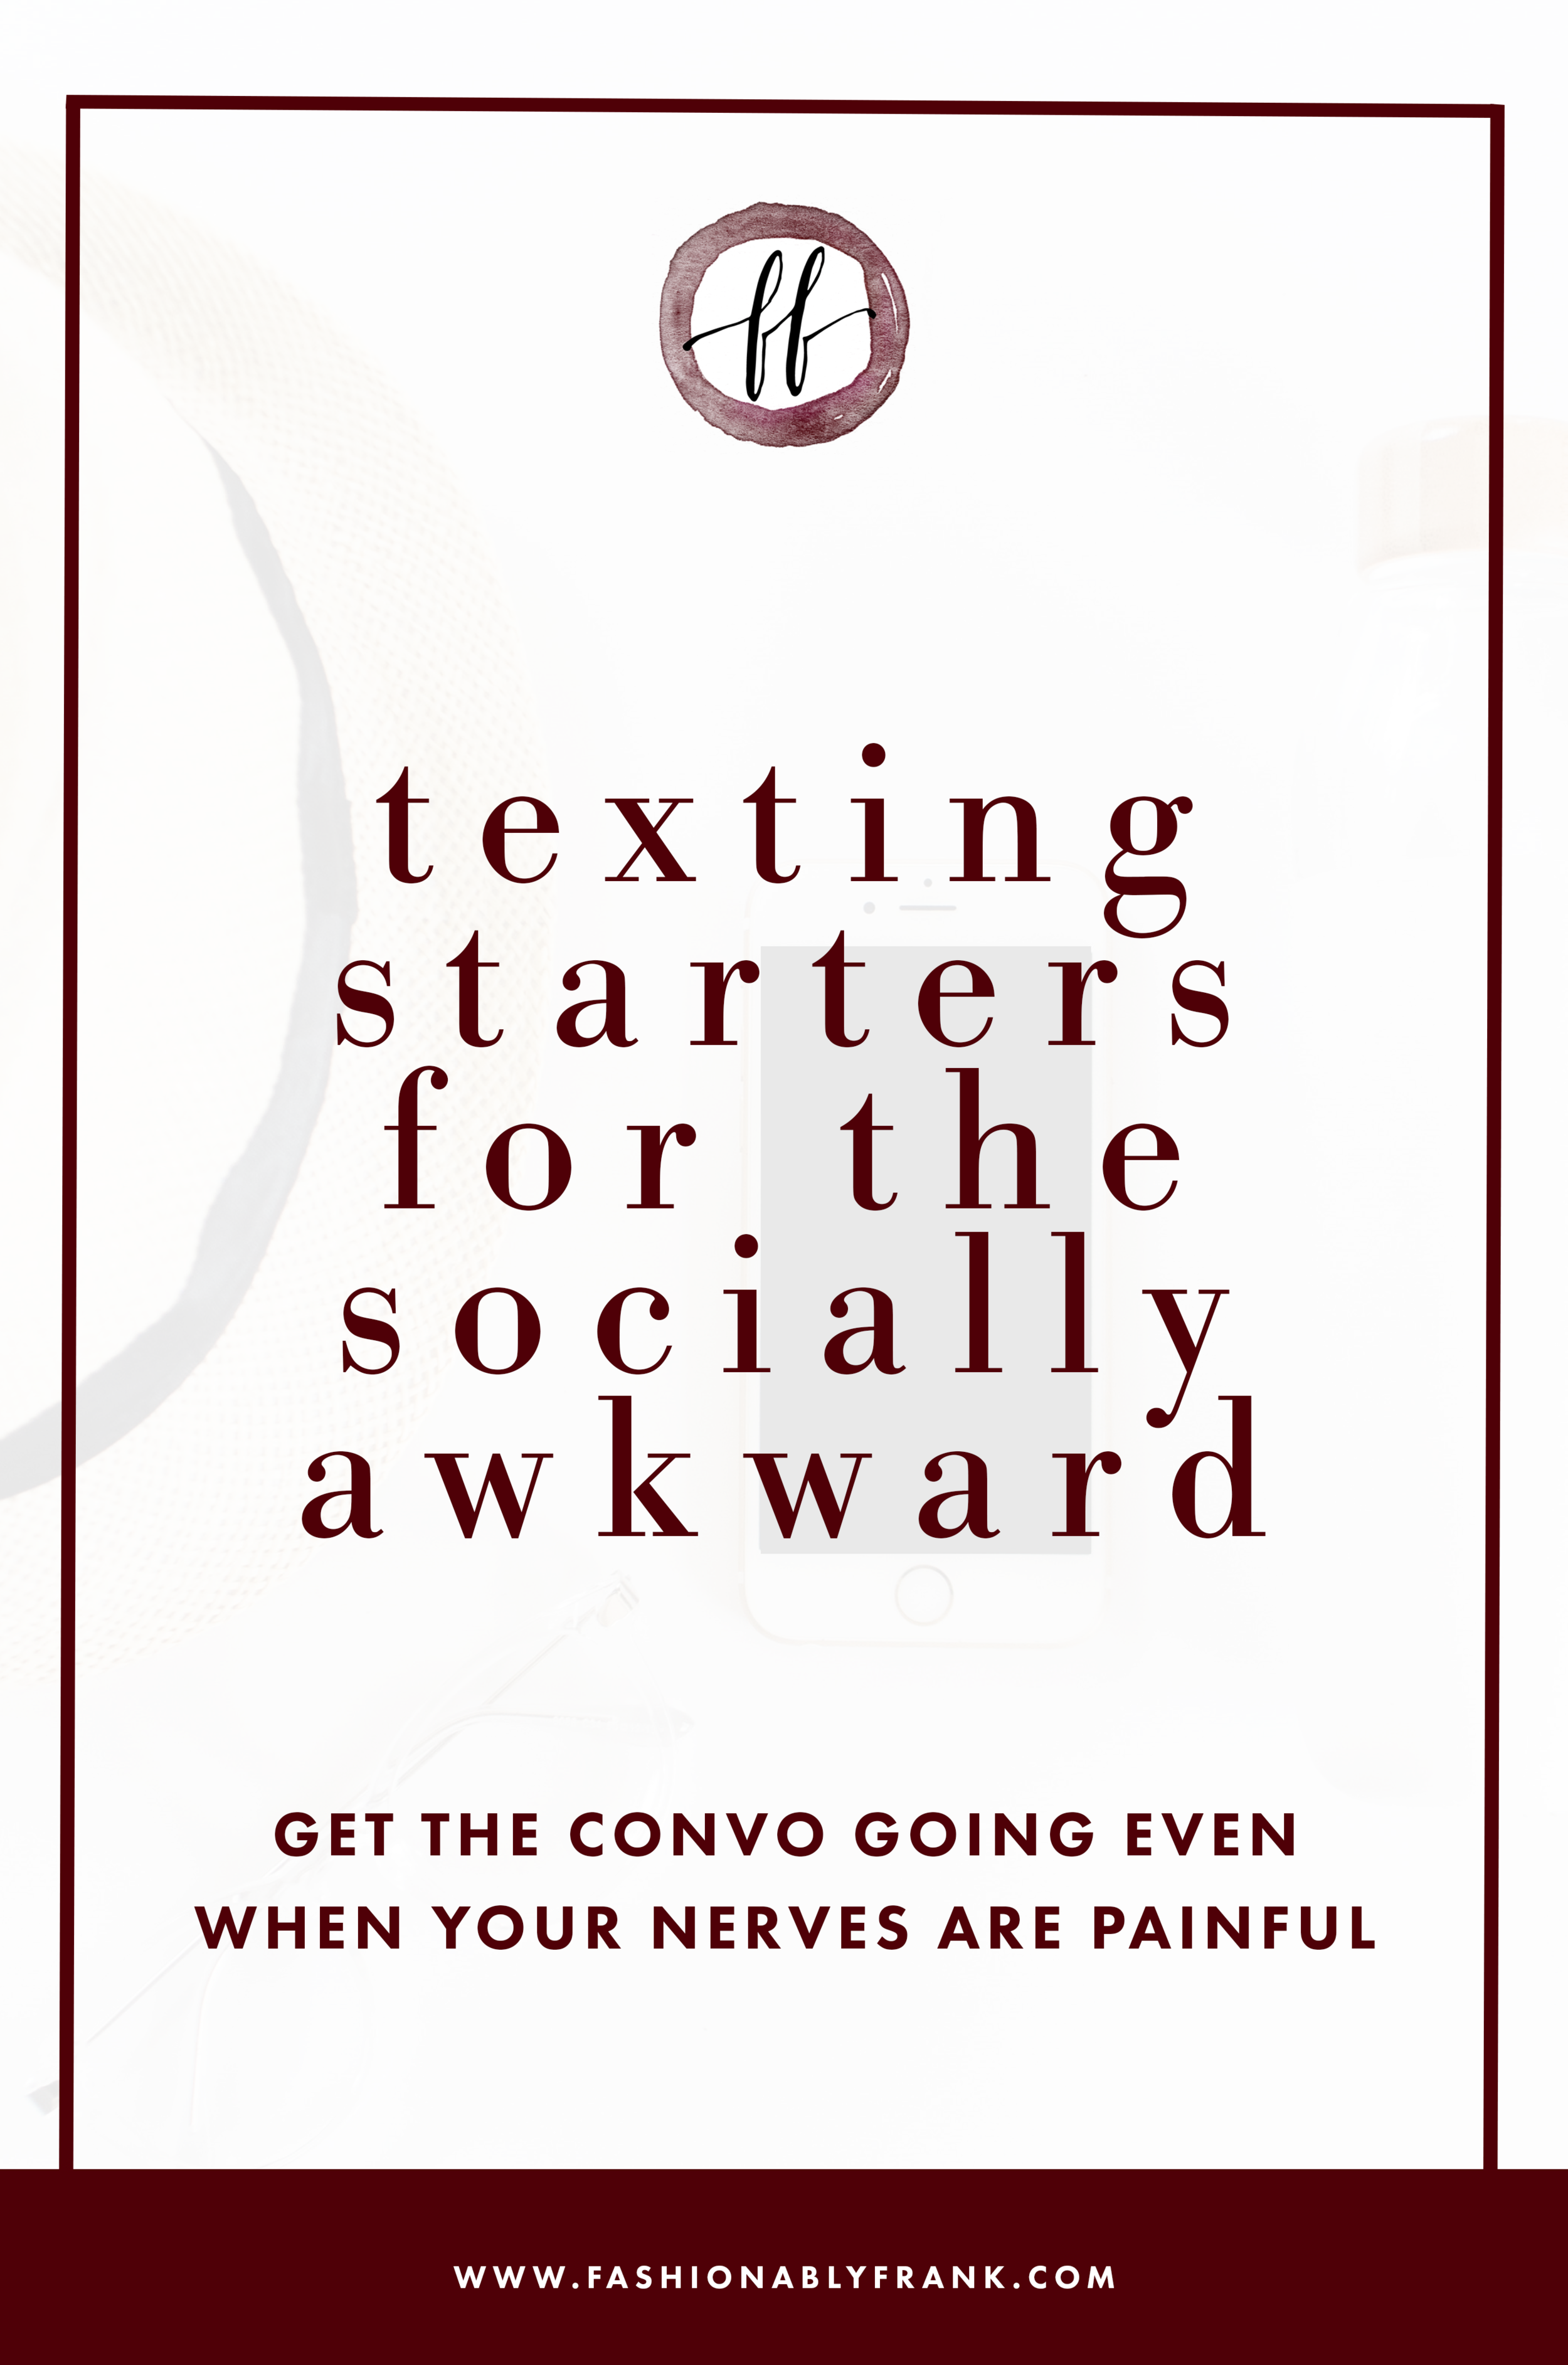 Texting Starters for the Socially Awkward